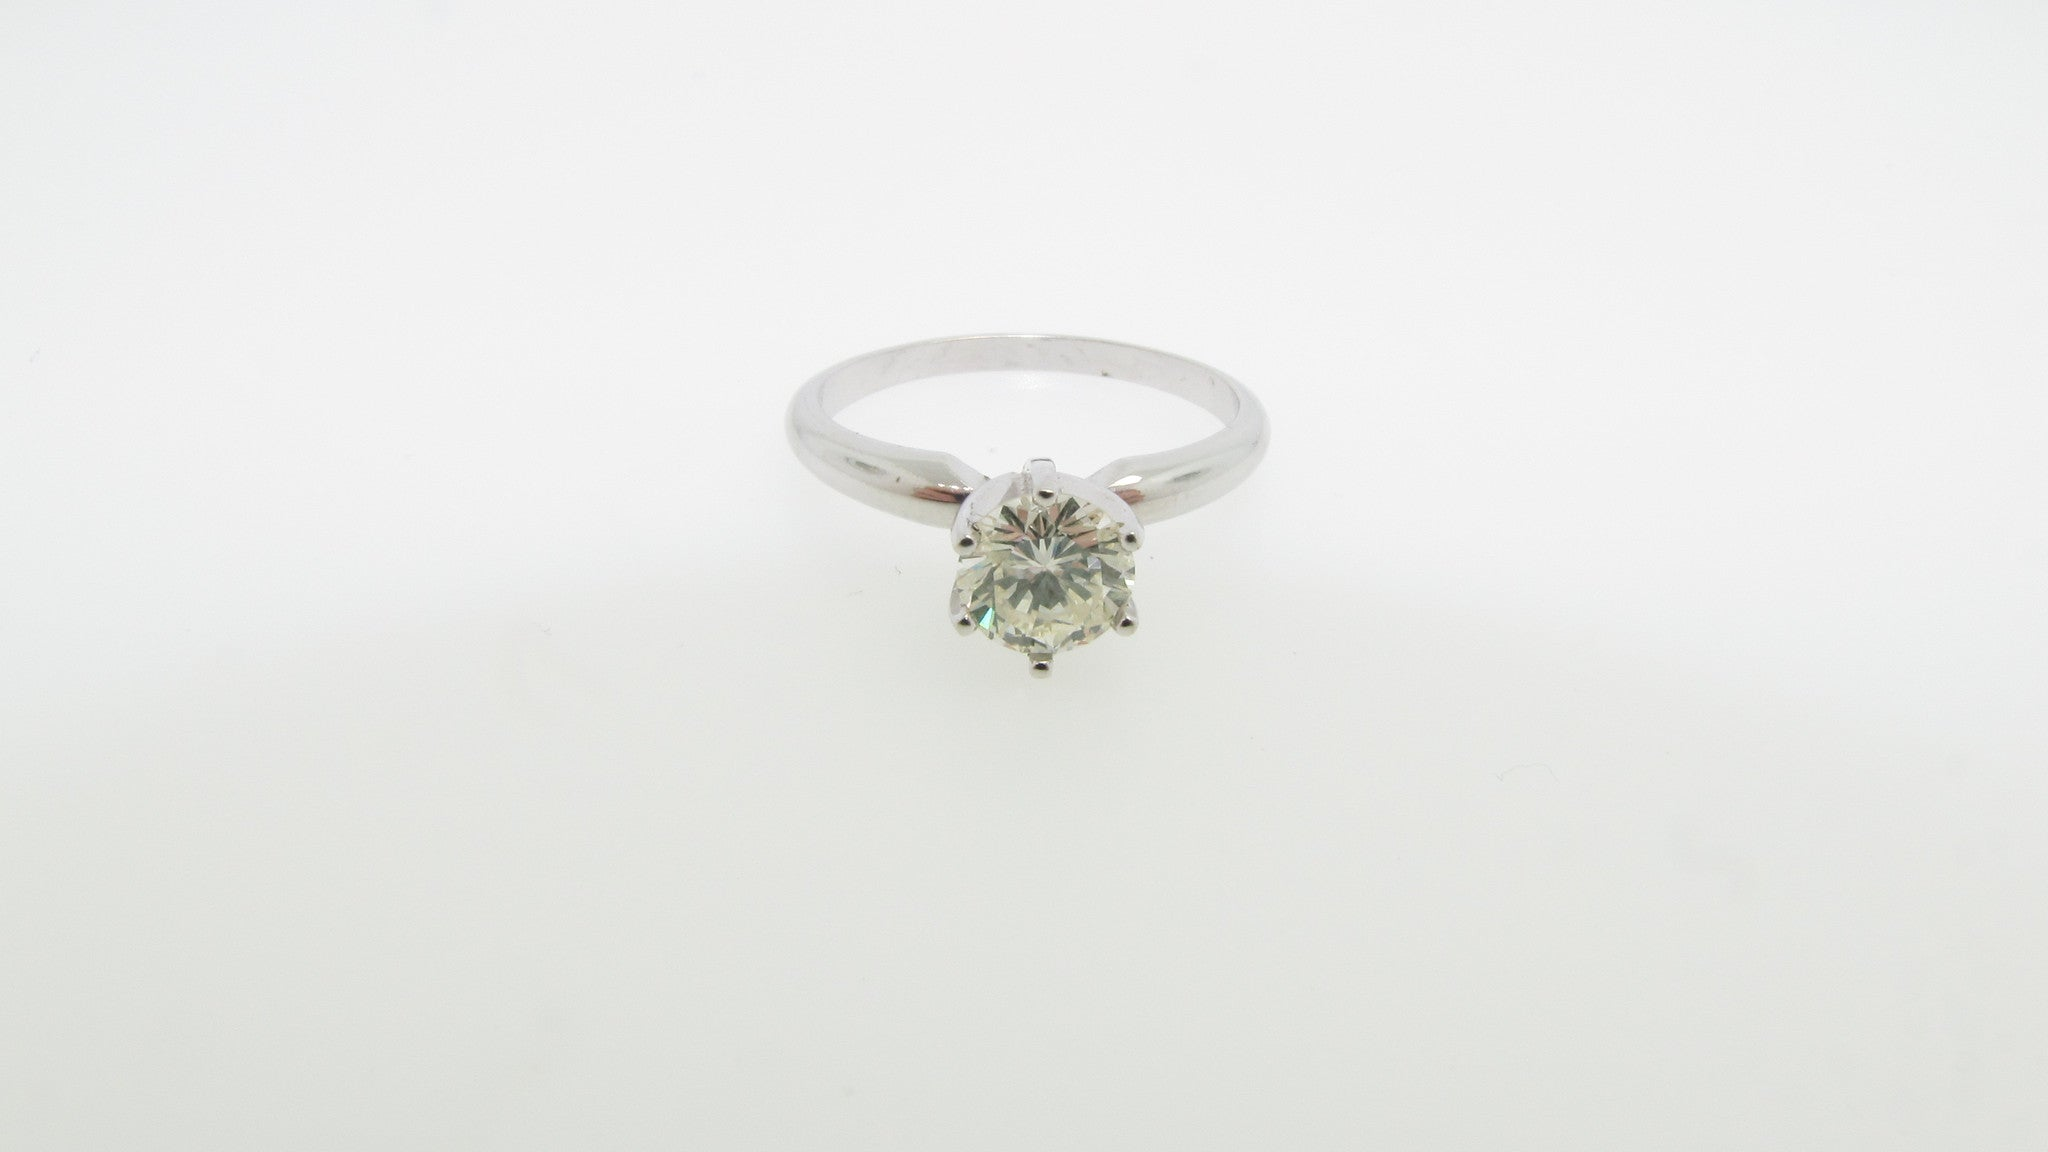 14K White Gold .78ct Round Diamond Solitaire Engagement Ring